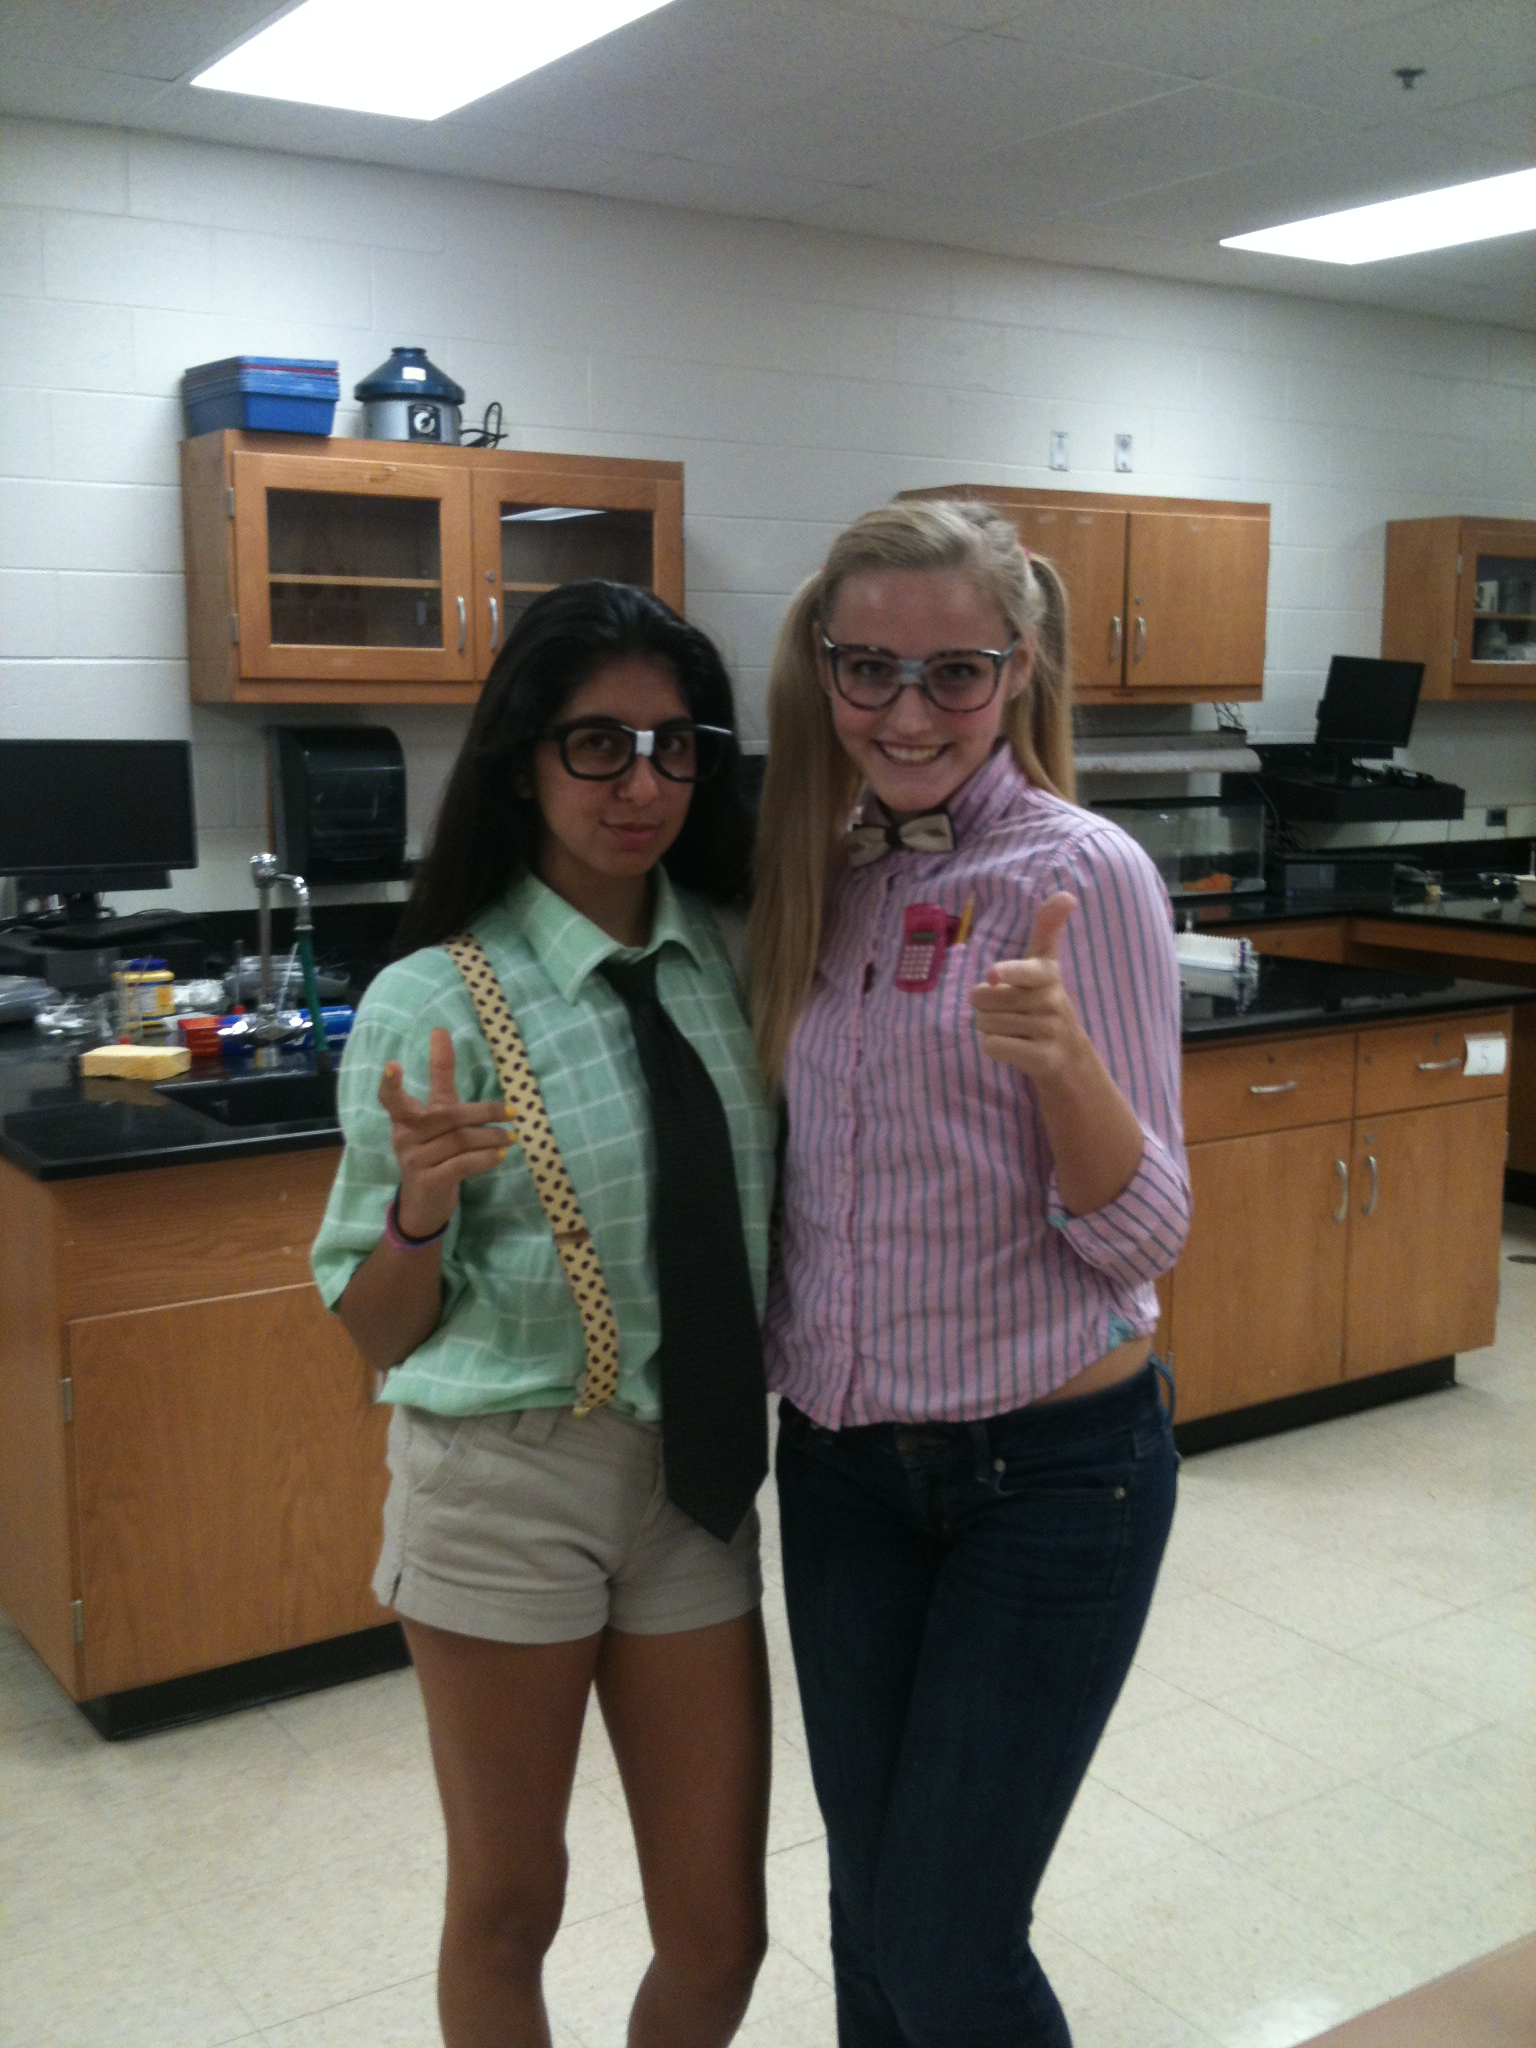 Sophomores Bahar Lakeh and Lindsey Freeman went with a nerdy looking outfit  to be twins. The Best of Twin Day